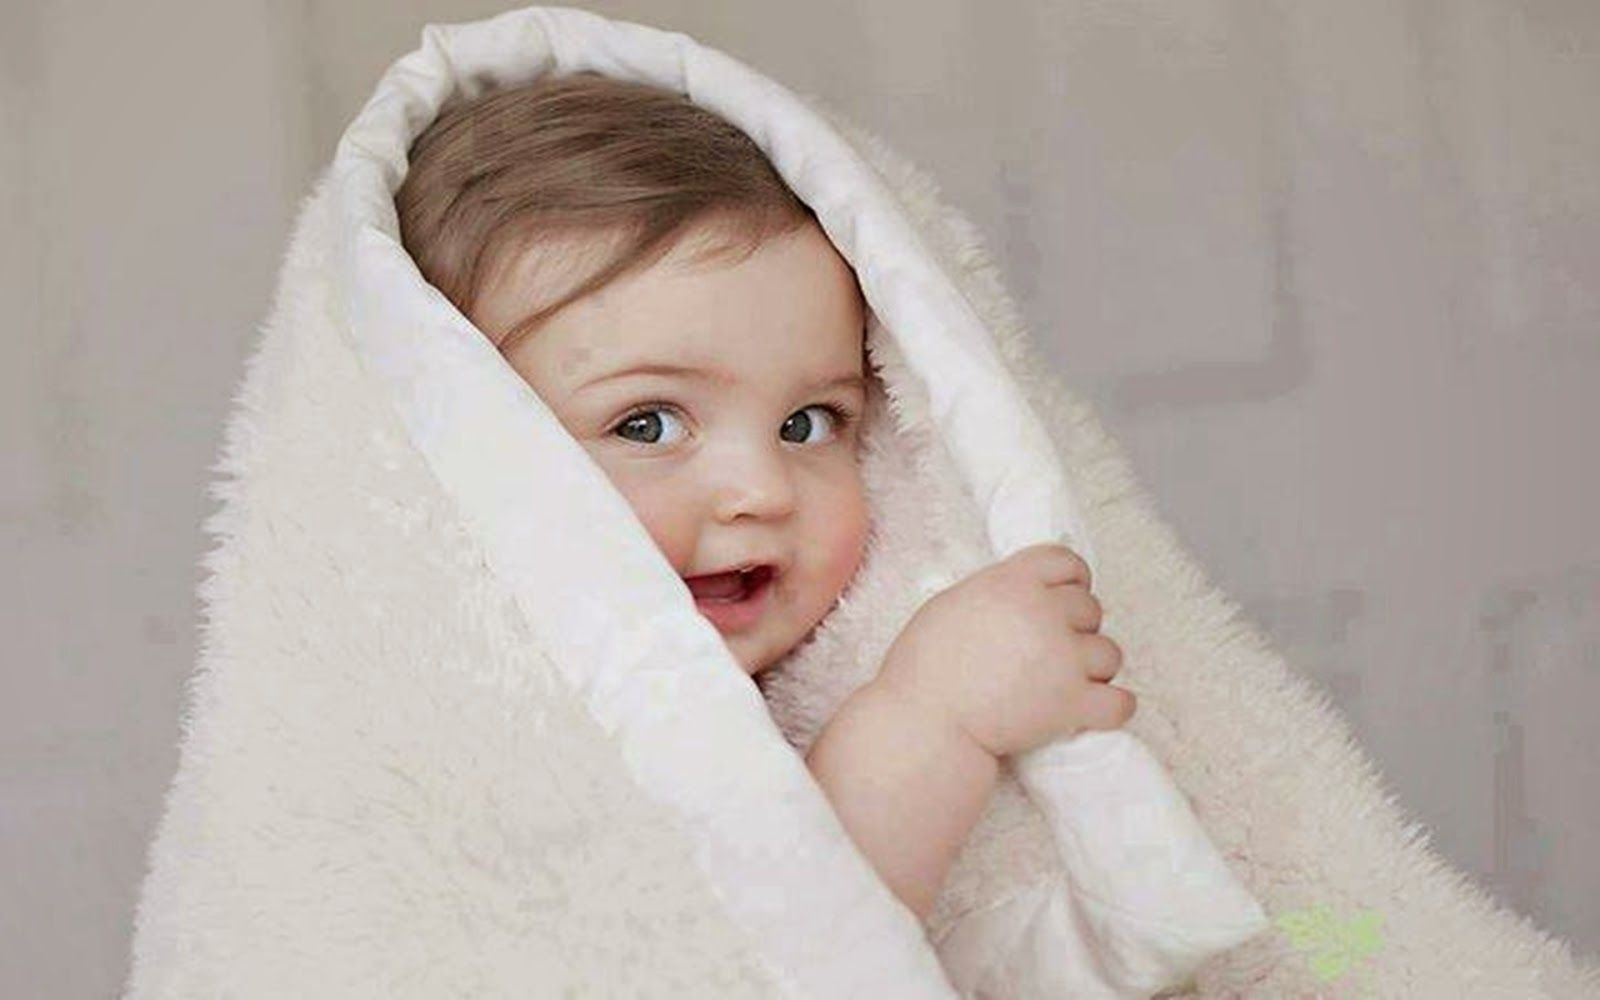 Cute Baby Girl Pics For Facebook Profile Google Search Baby Pics